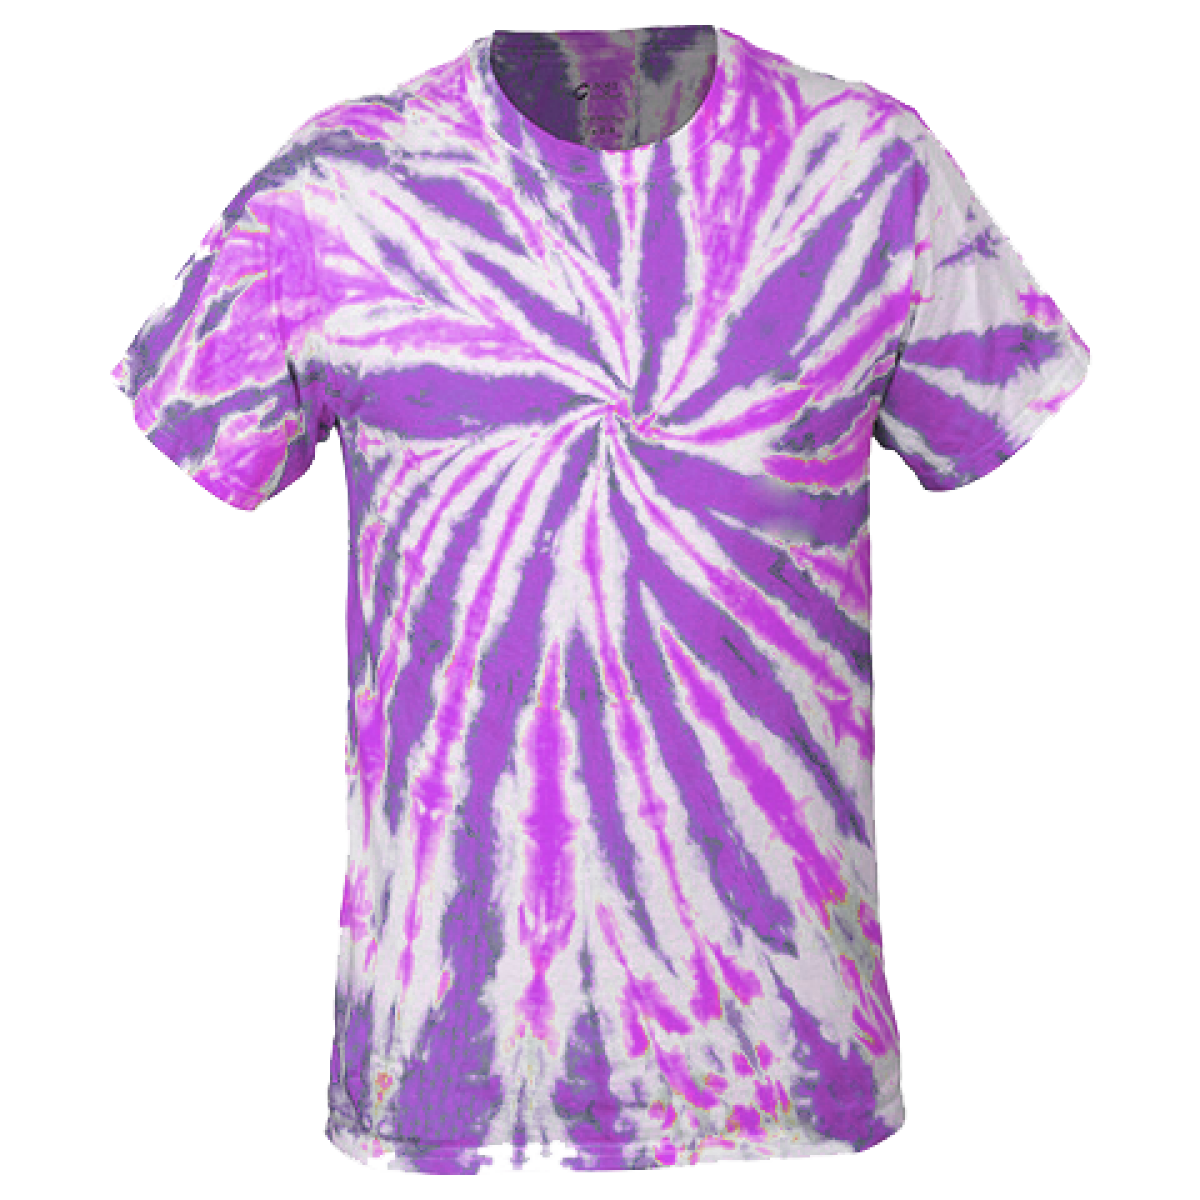 Multi-Color Tie-Dye Tee -Purple-S